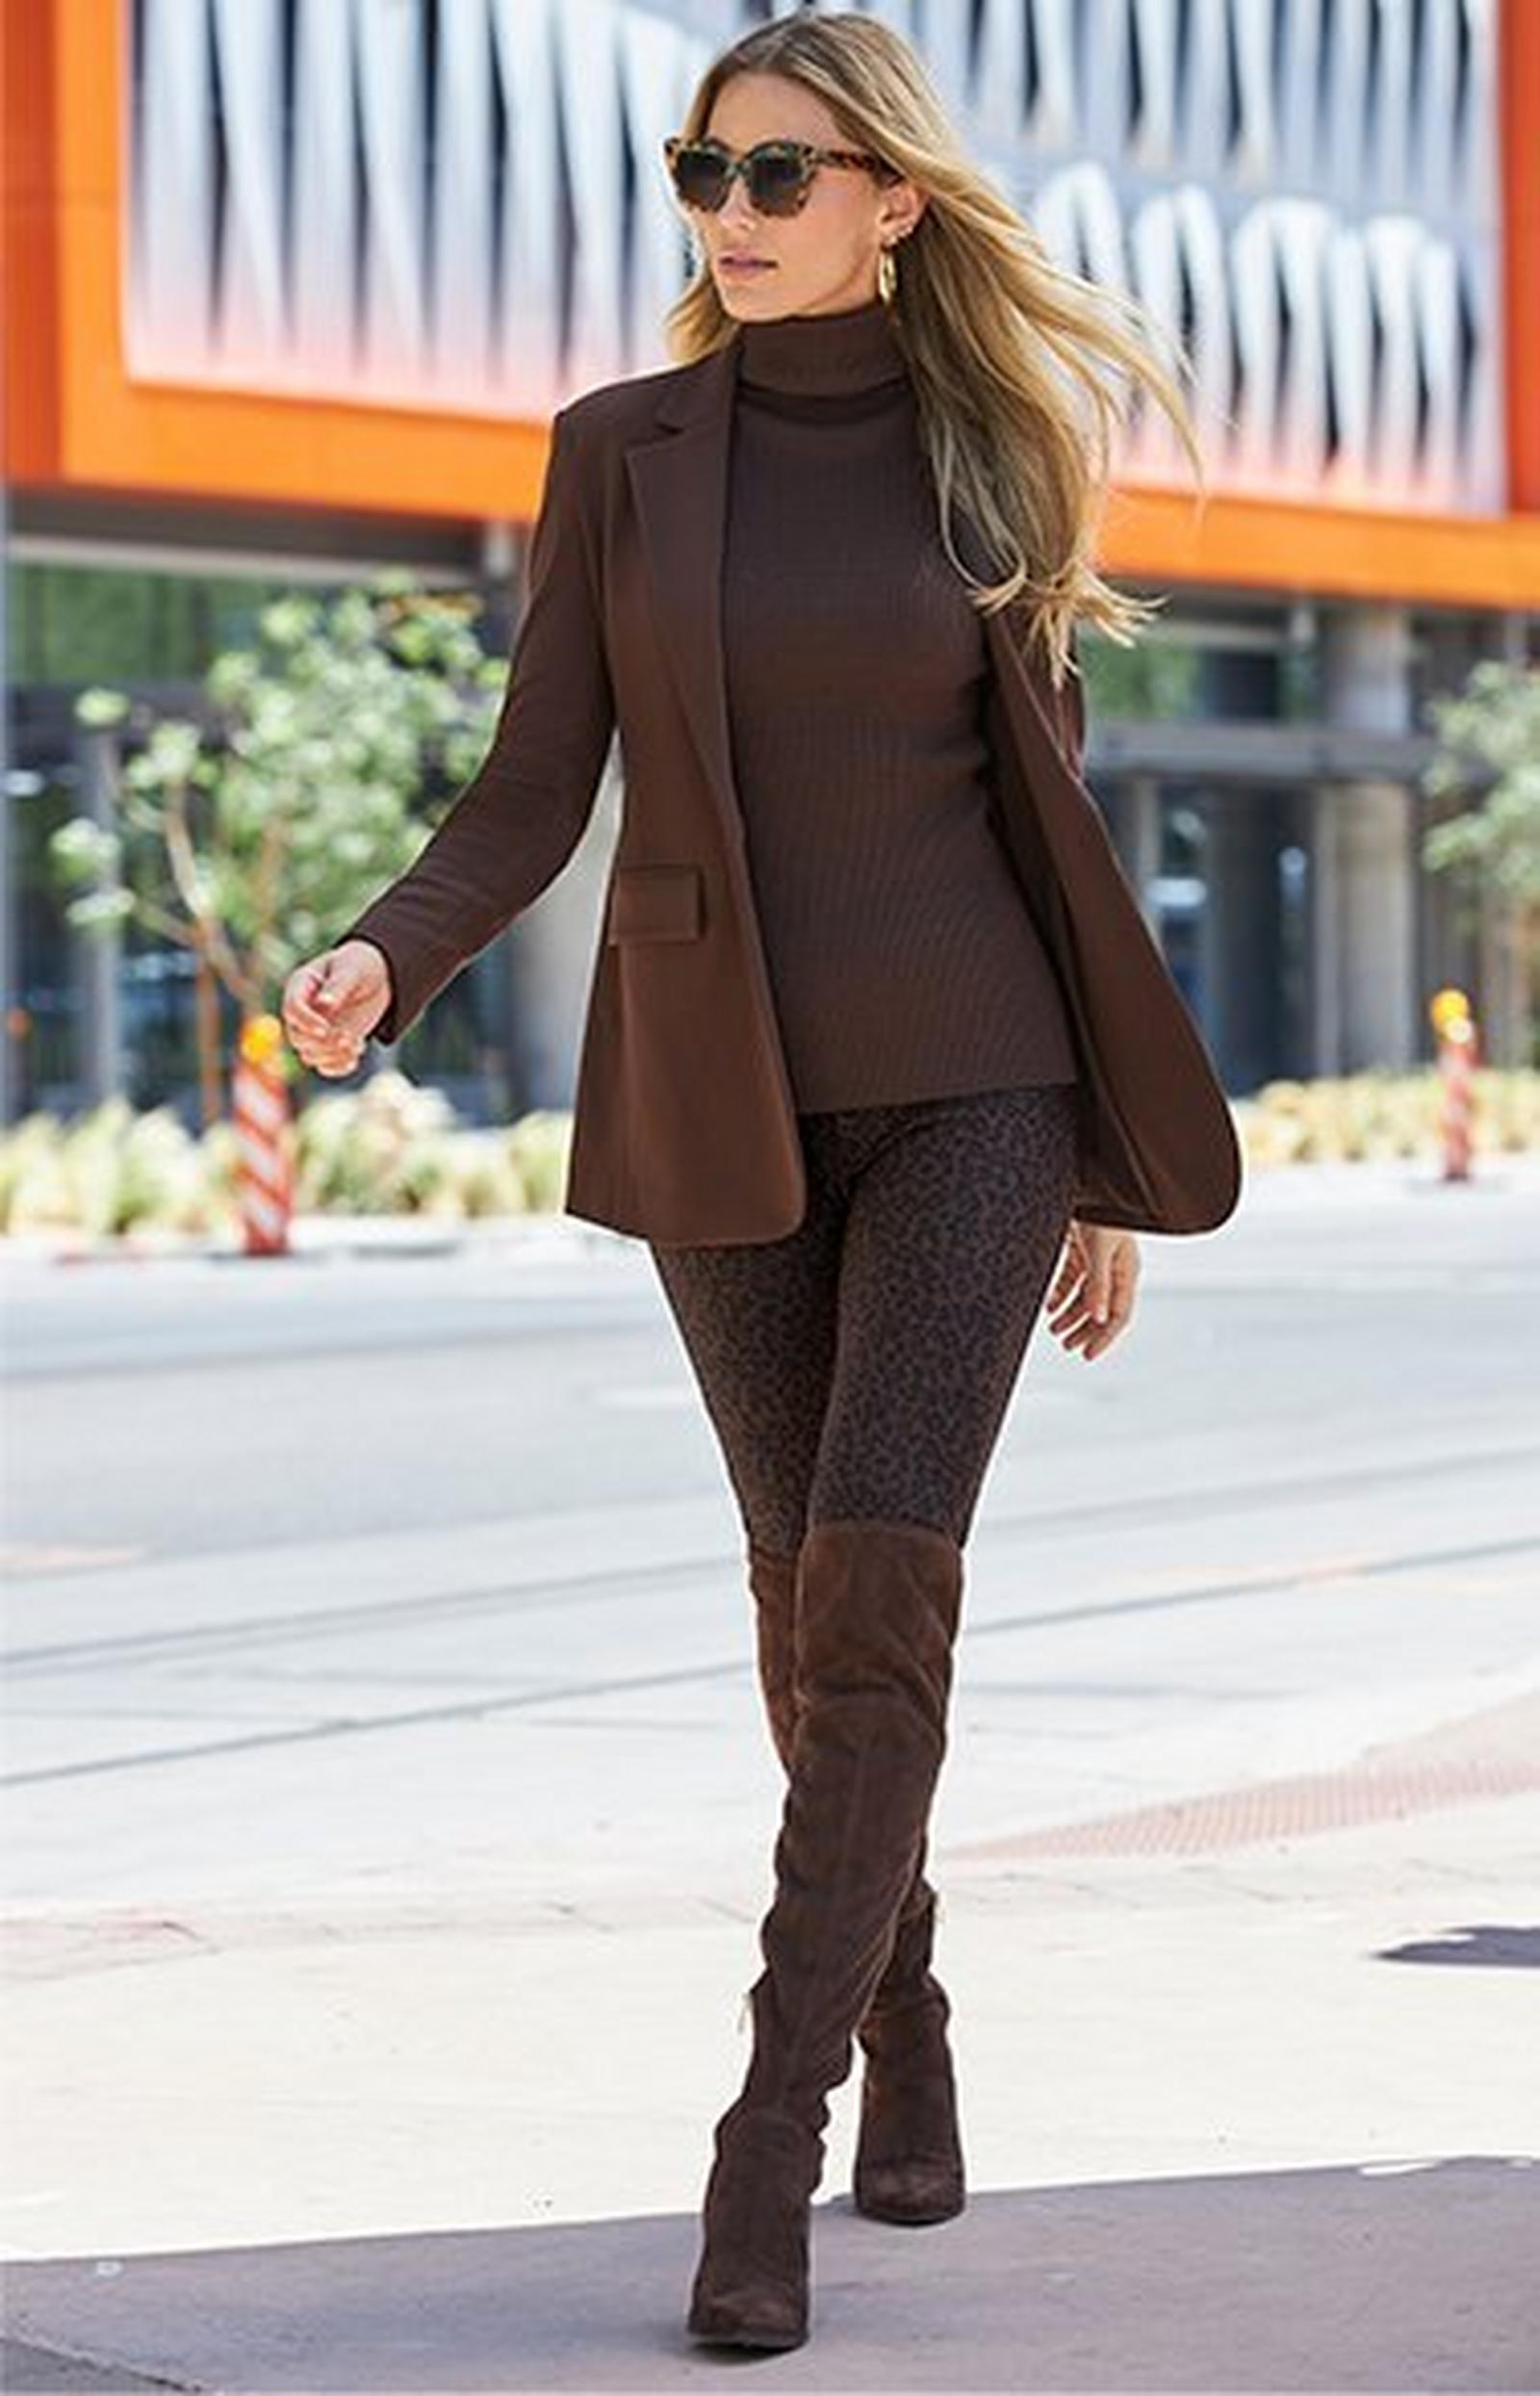 model wearing a chocolate brown blazer, chocolate brown ribbed turtleneck sweater, brown animal print leggings, and chocolate brown over-the-knee suede boots.